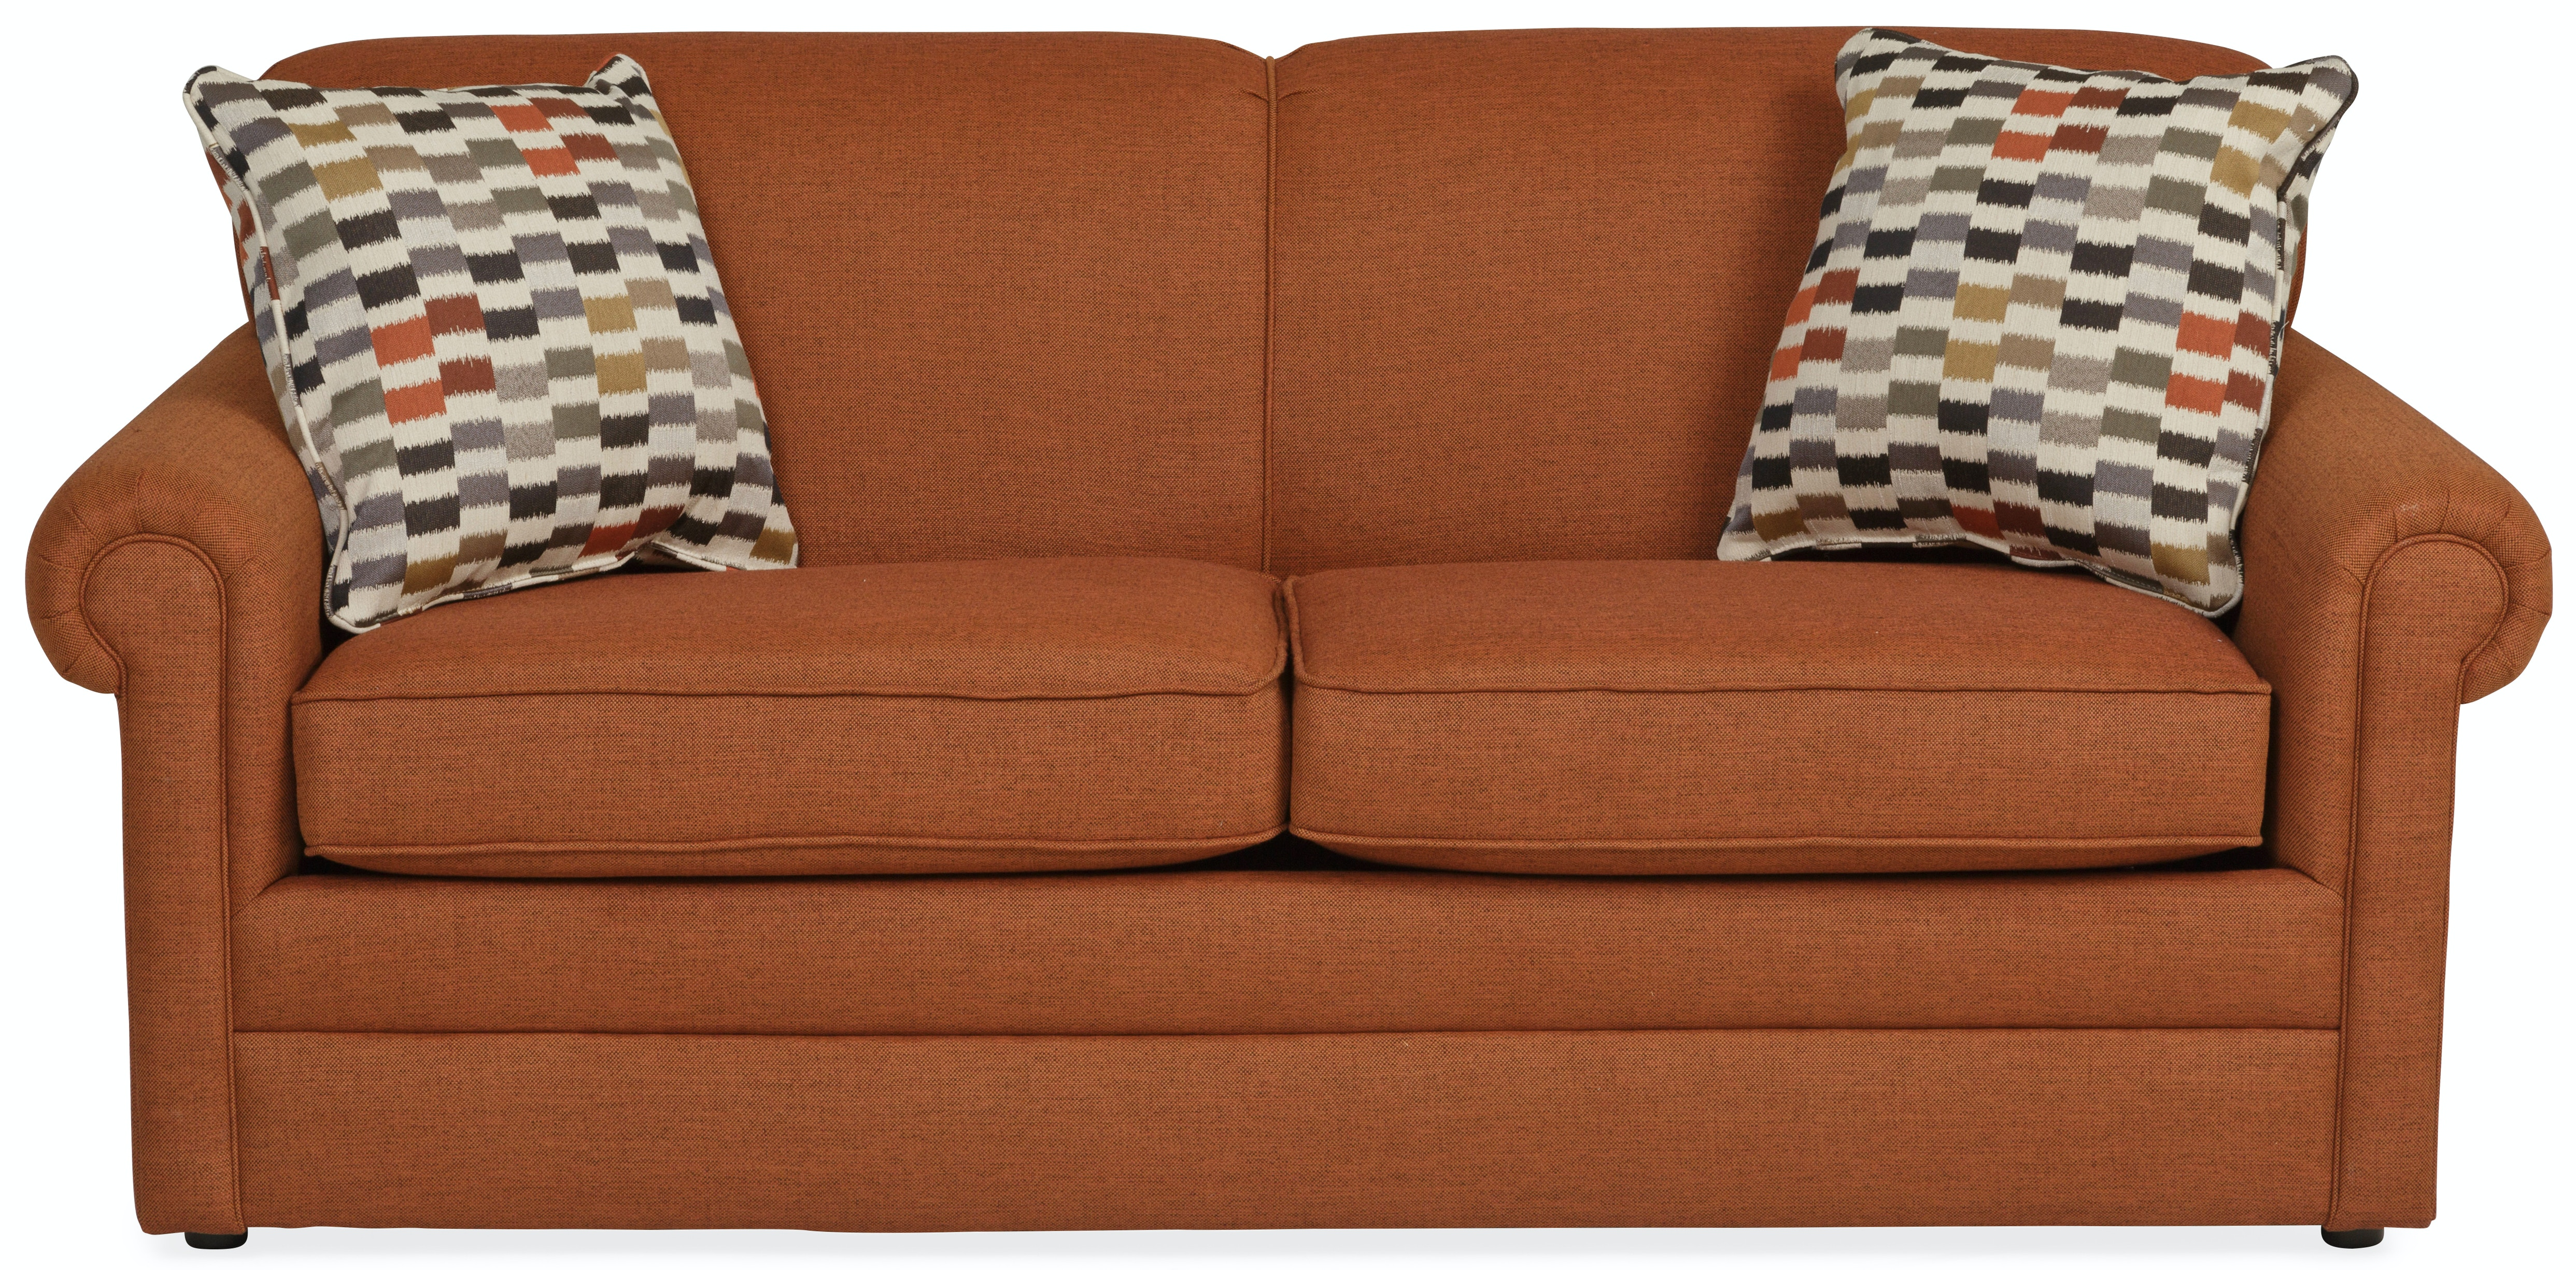 Kerry Full Air Mattress Sleeper Sofa   COPPER ST:507358